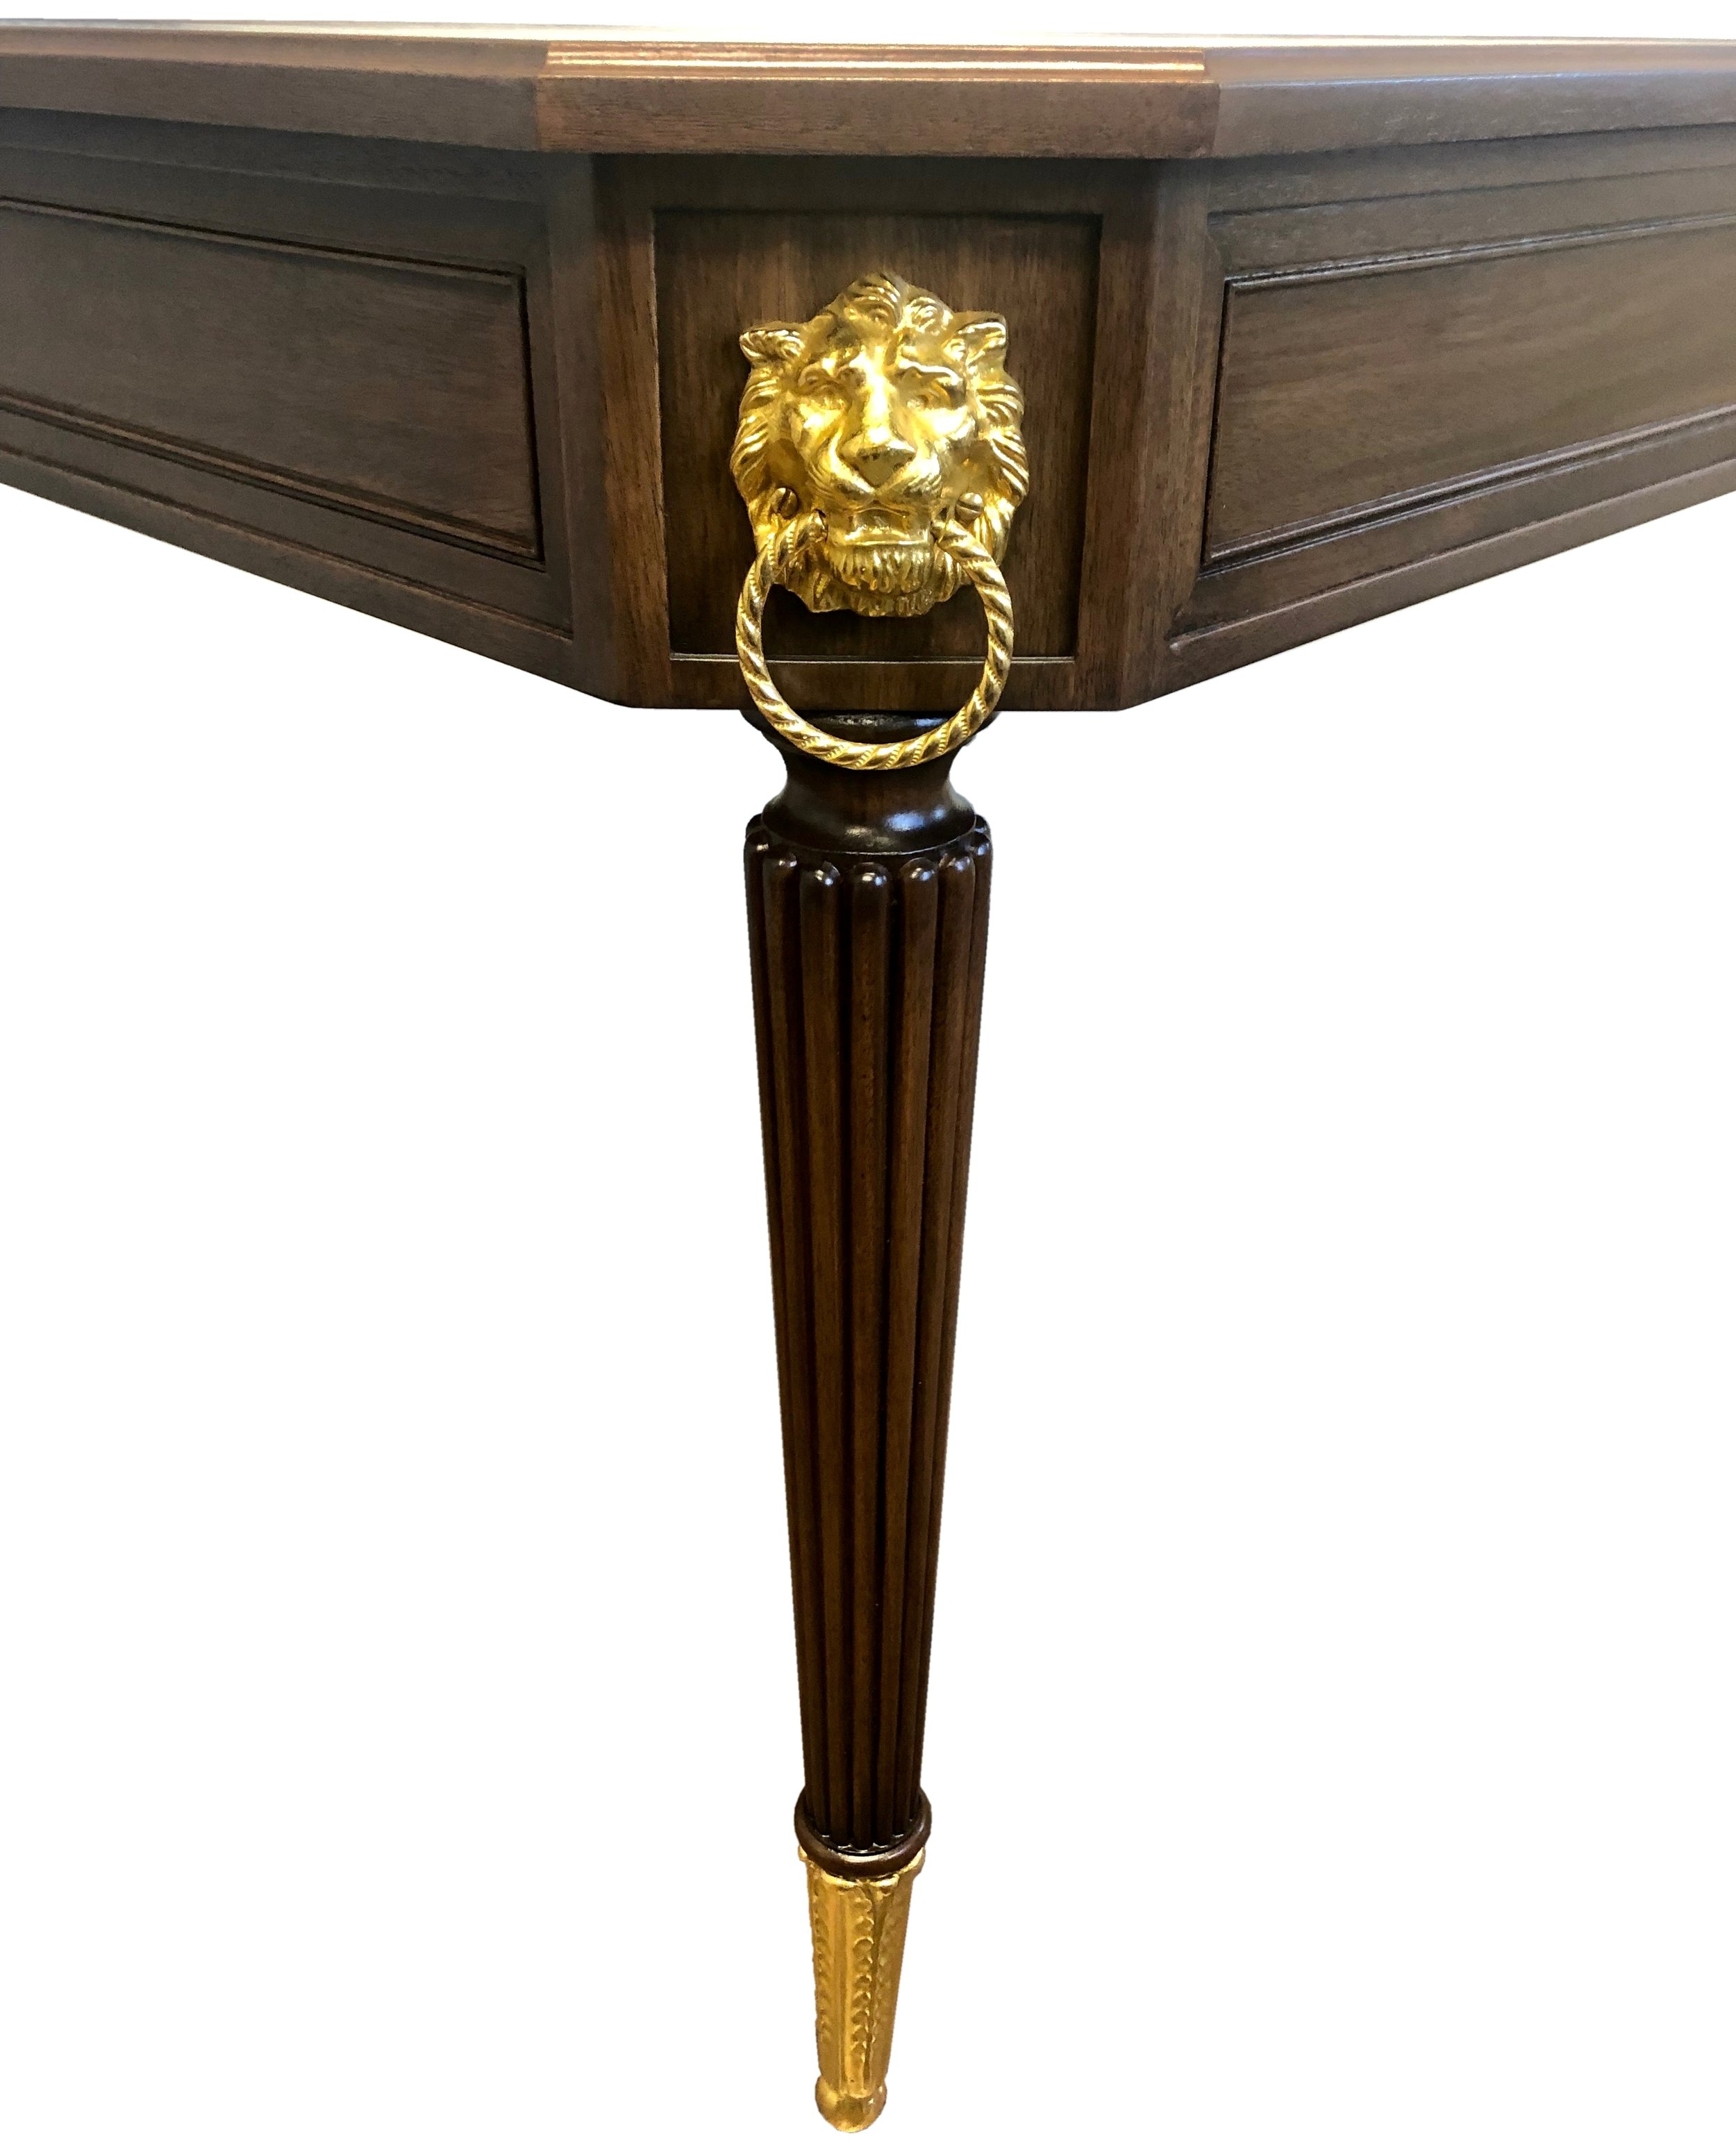 R619-English-Regency-Style-Desk-Leather-Top-Victoria-&-Son-Custom-Furniture-Antiques-Tolling-detail-brass-mounts-lion-heads-gold.jpg